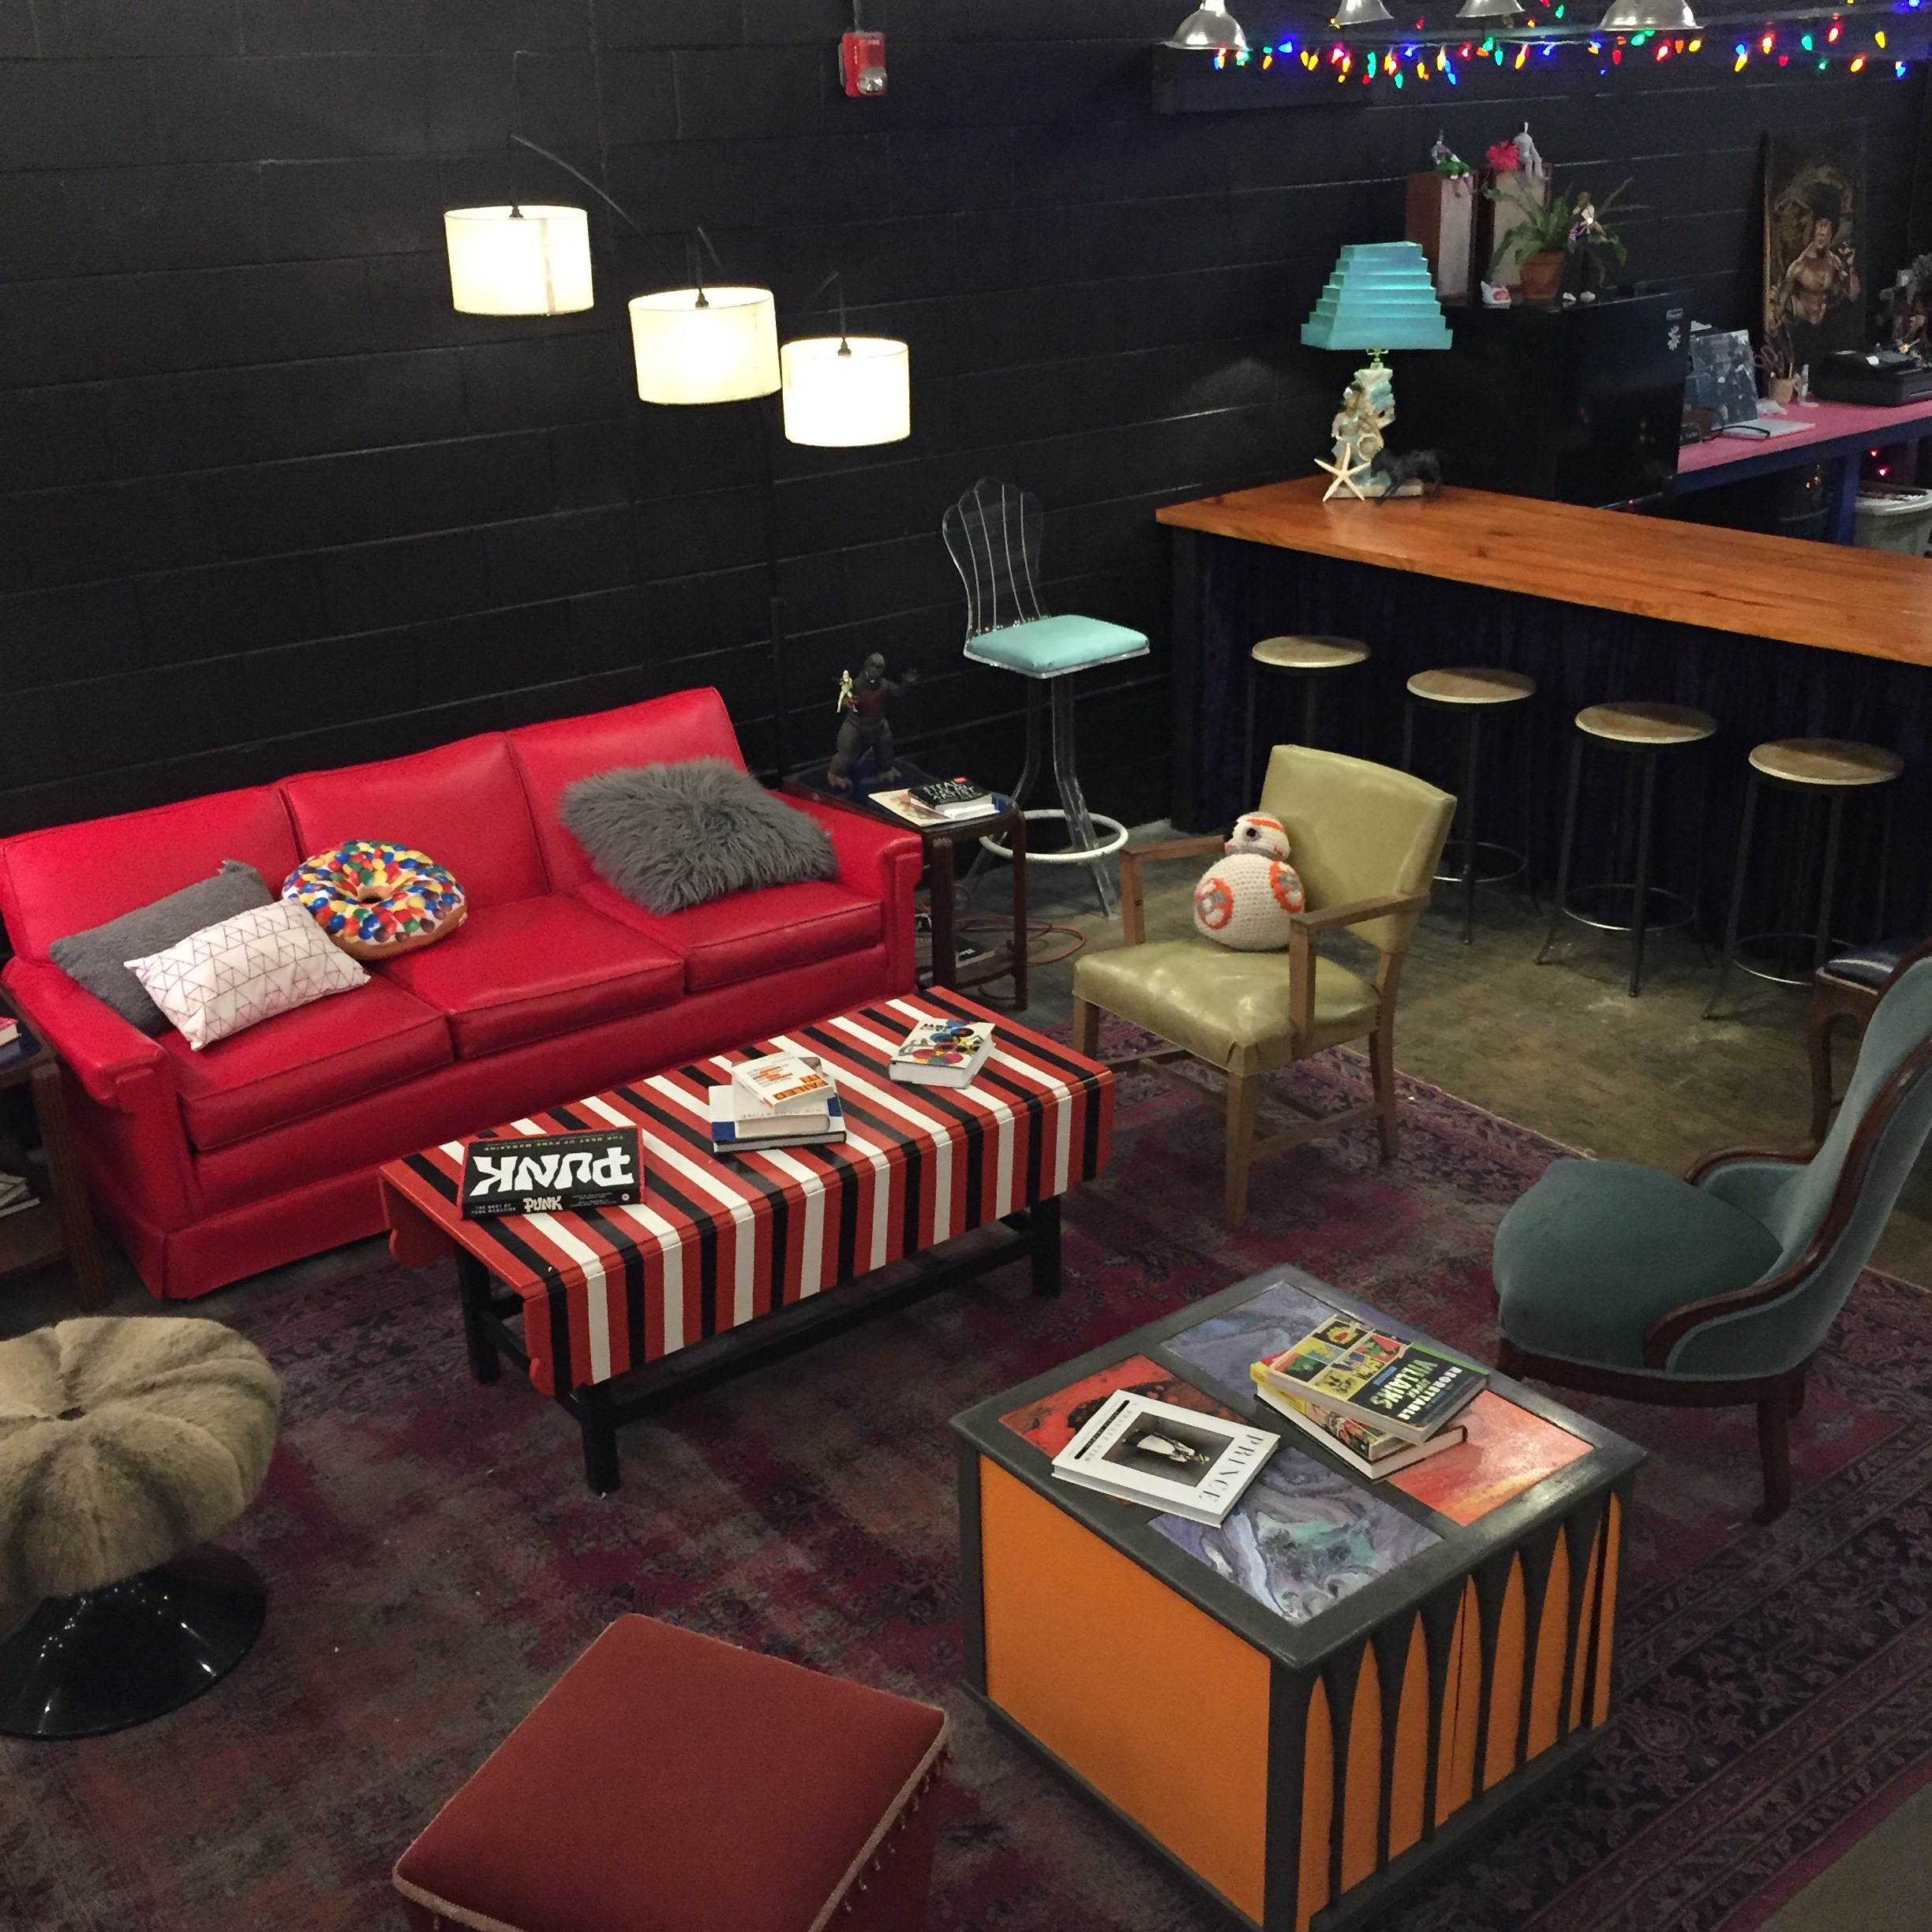 The lounge and bar area is super groovy